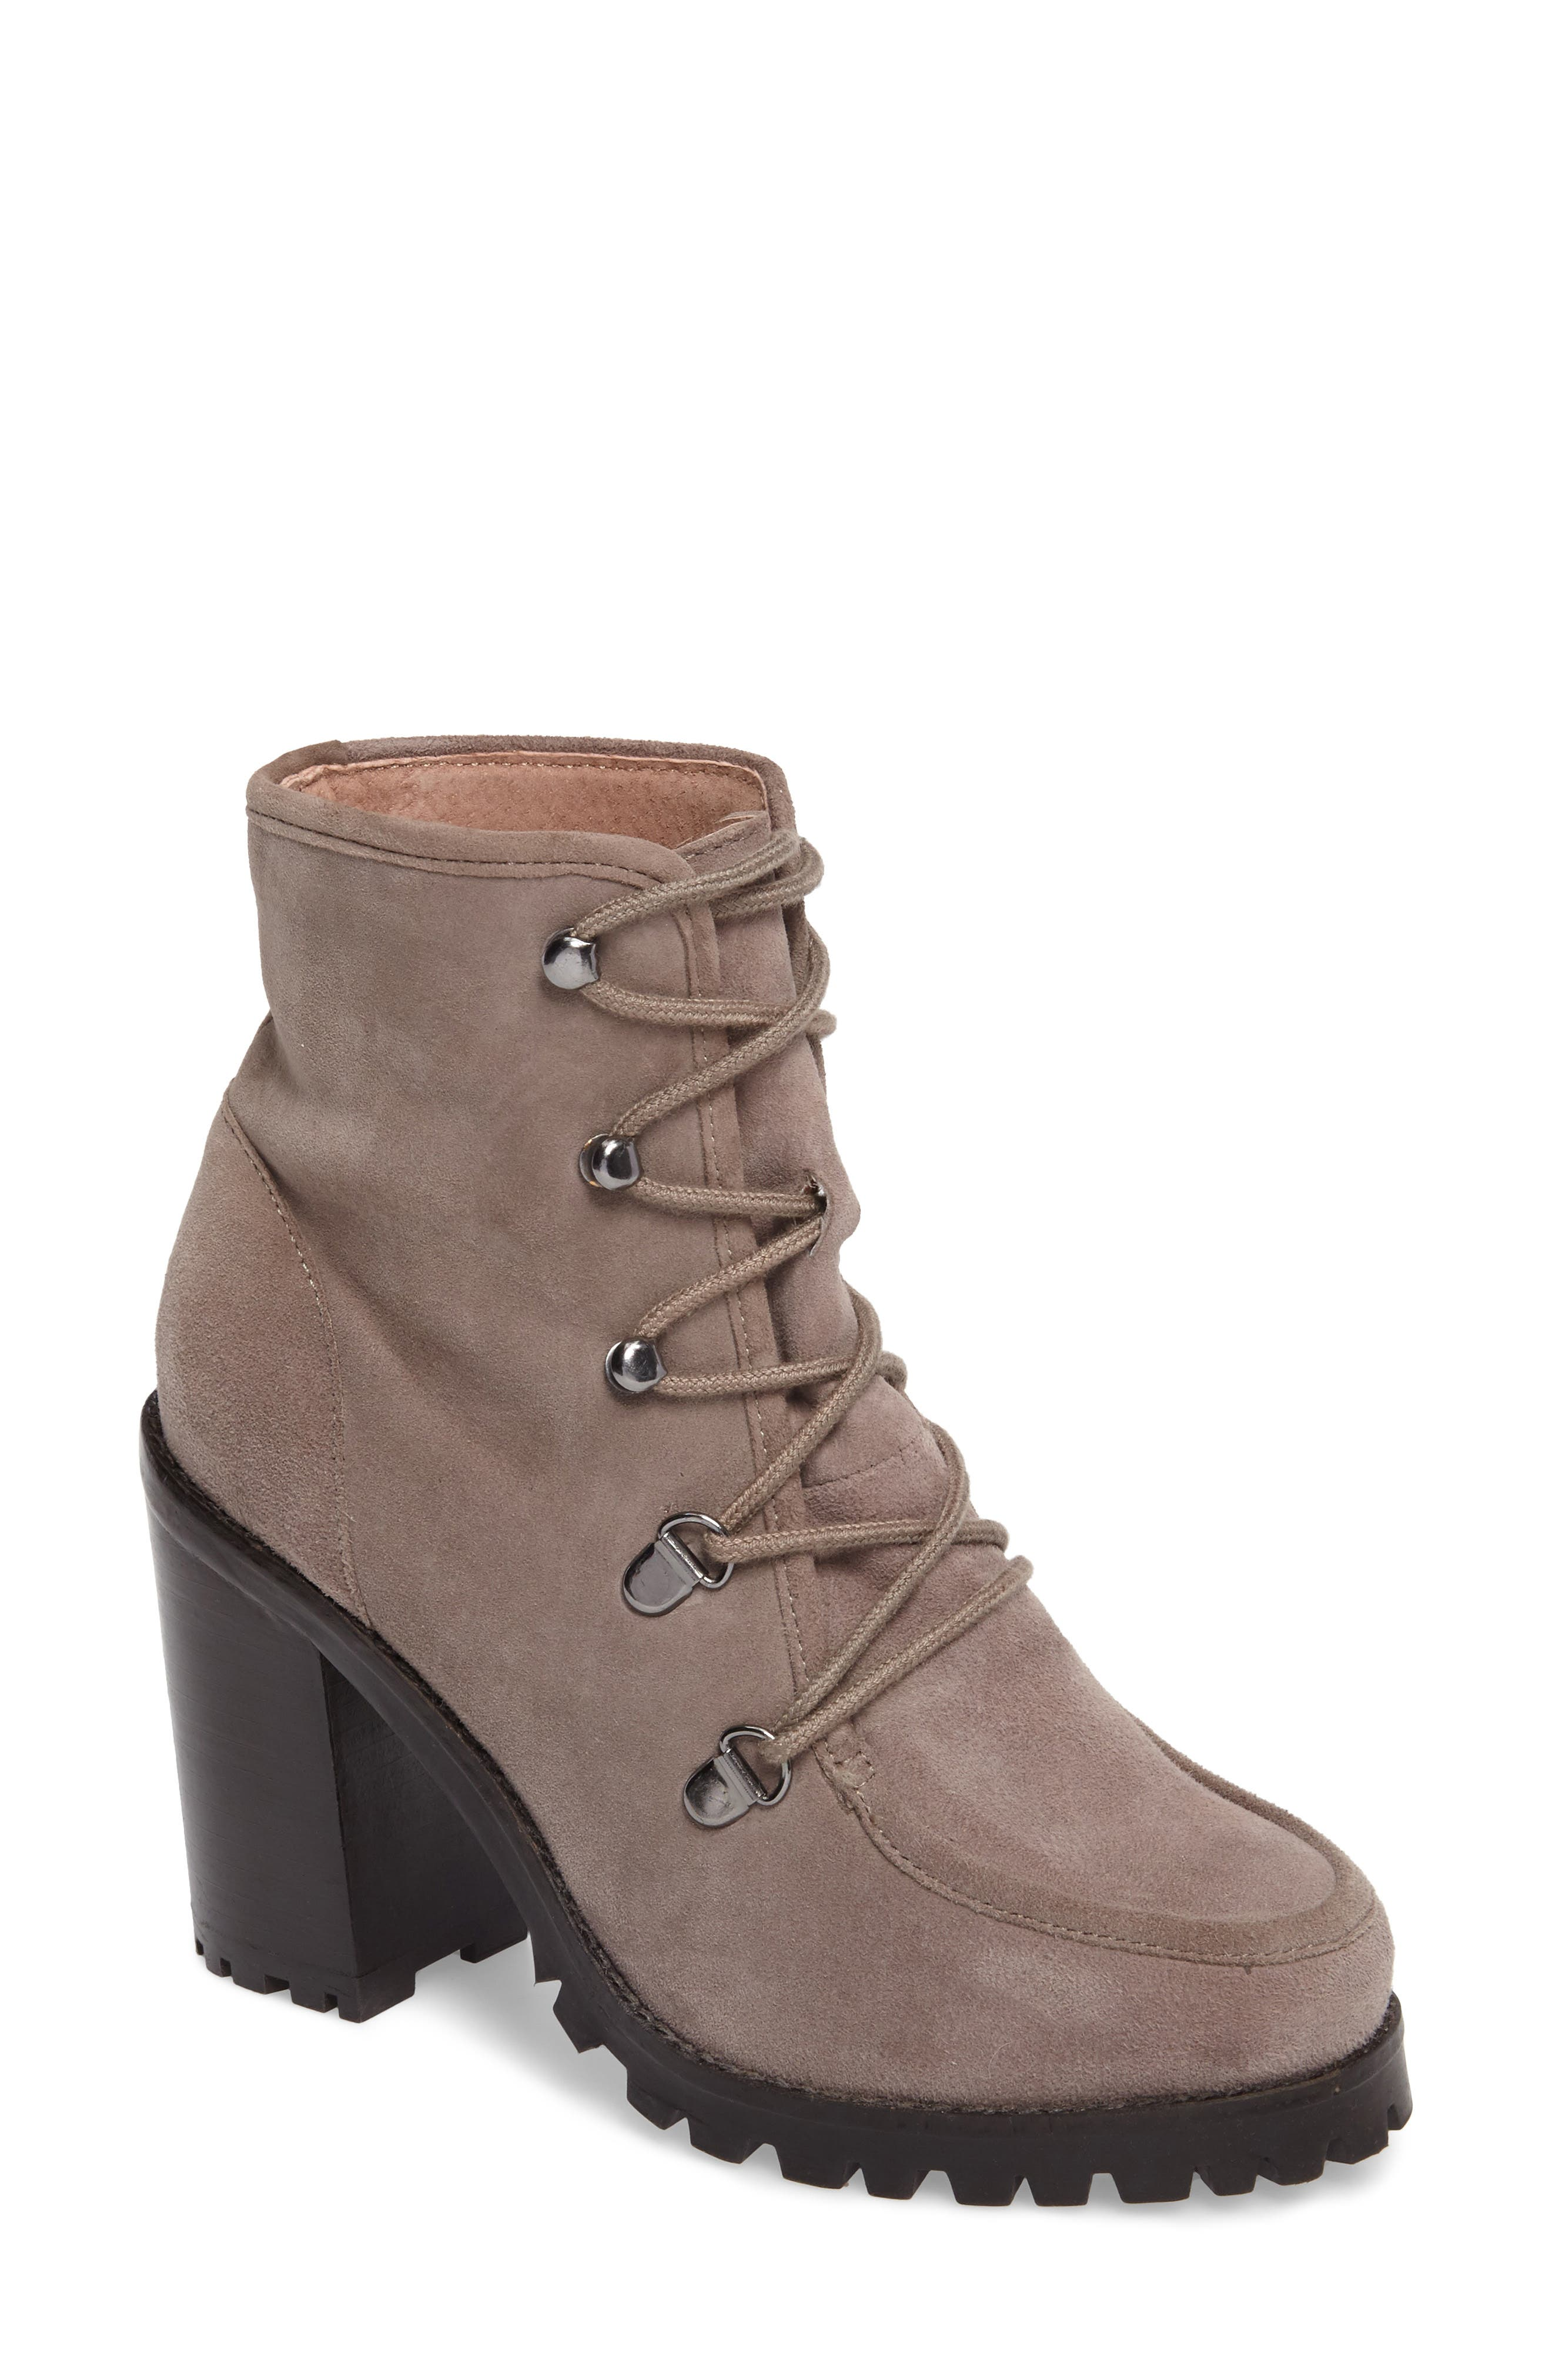 Theater Lace-Up Bootie,                         Main,                         color, Taupe Suede